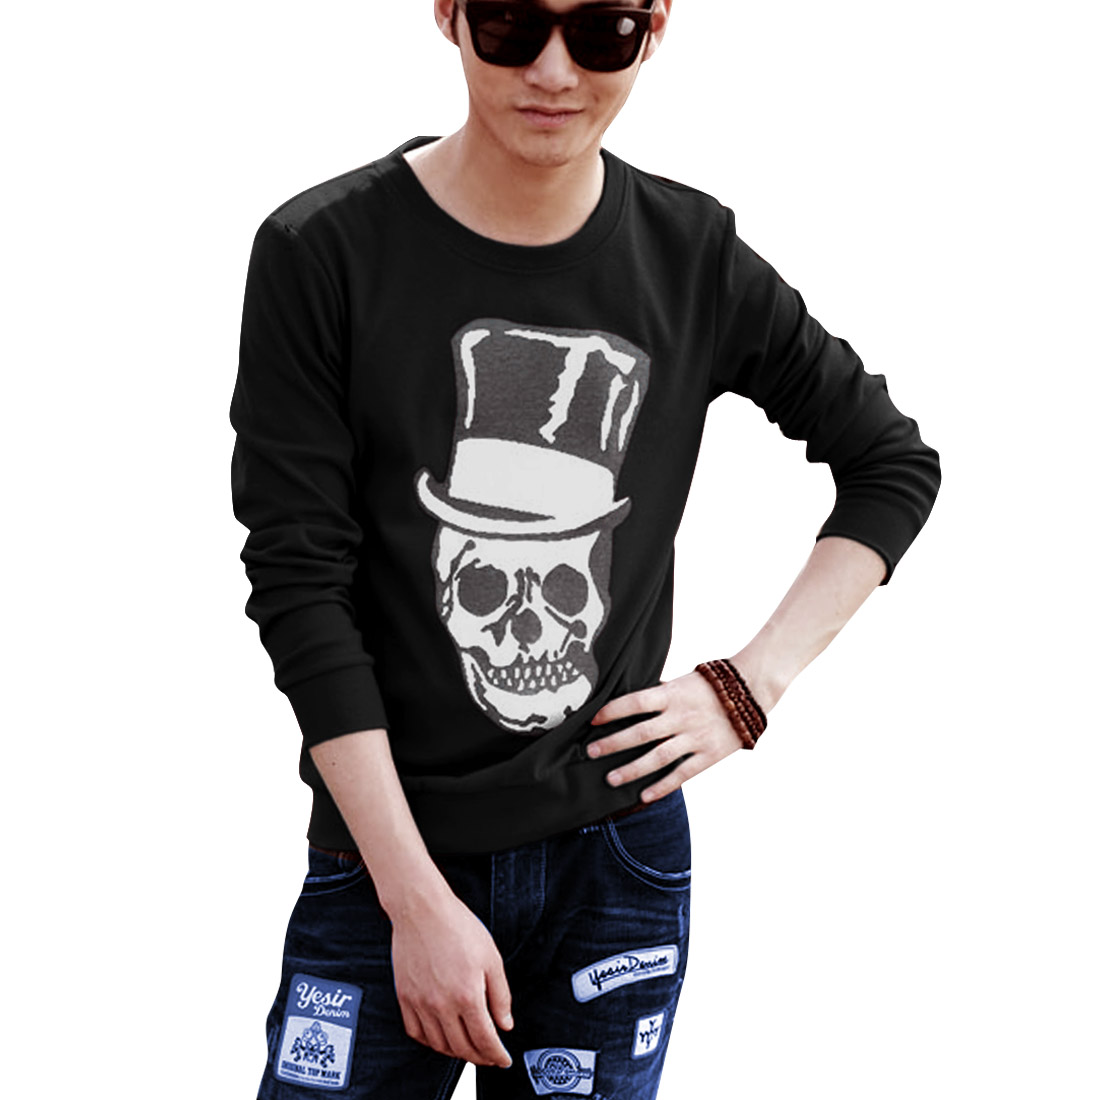 Men Round Neck Pullover Skull Printed Stretchy Black L T-Shirt